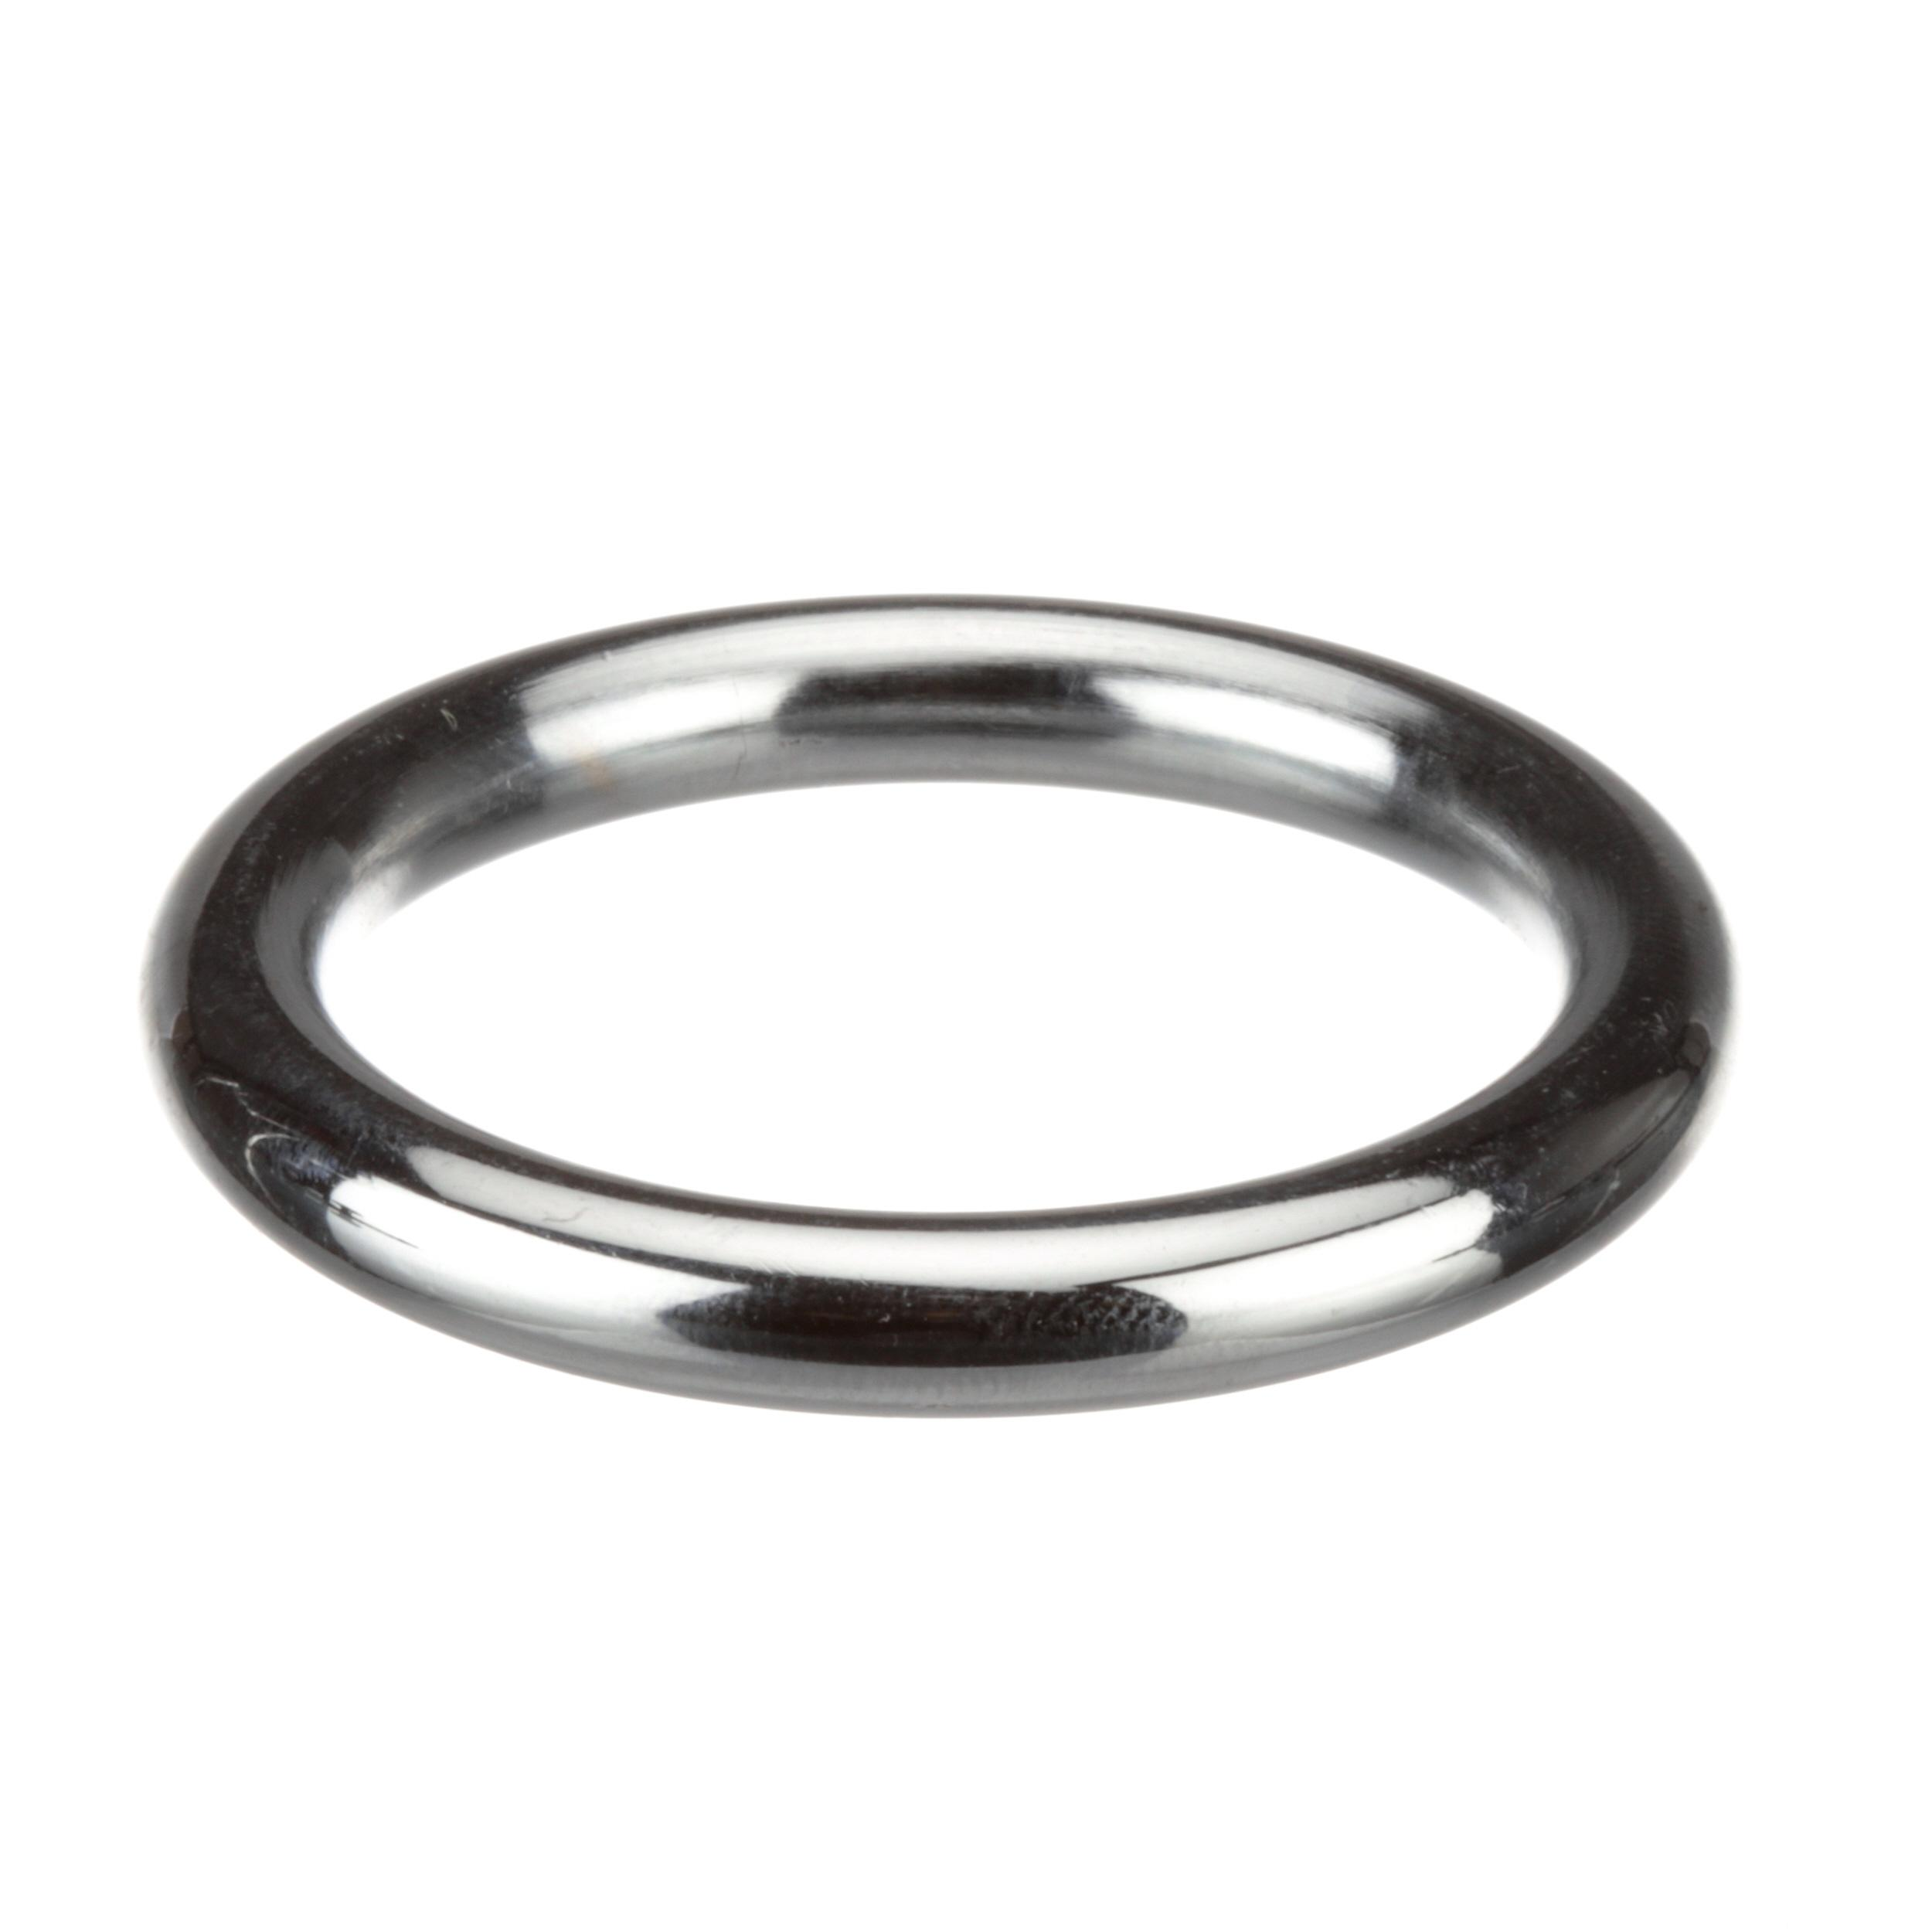 T&S BRASS HOLD DOWN RING METAL